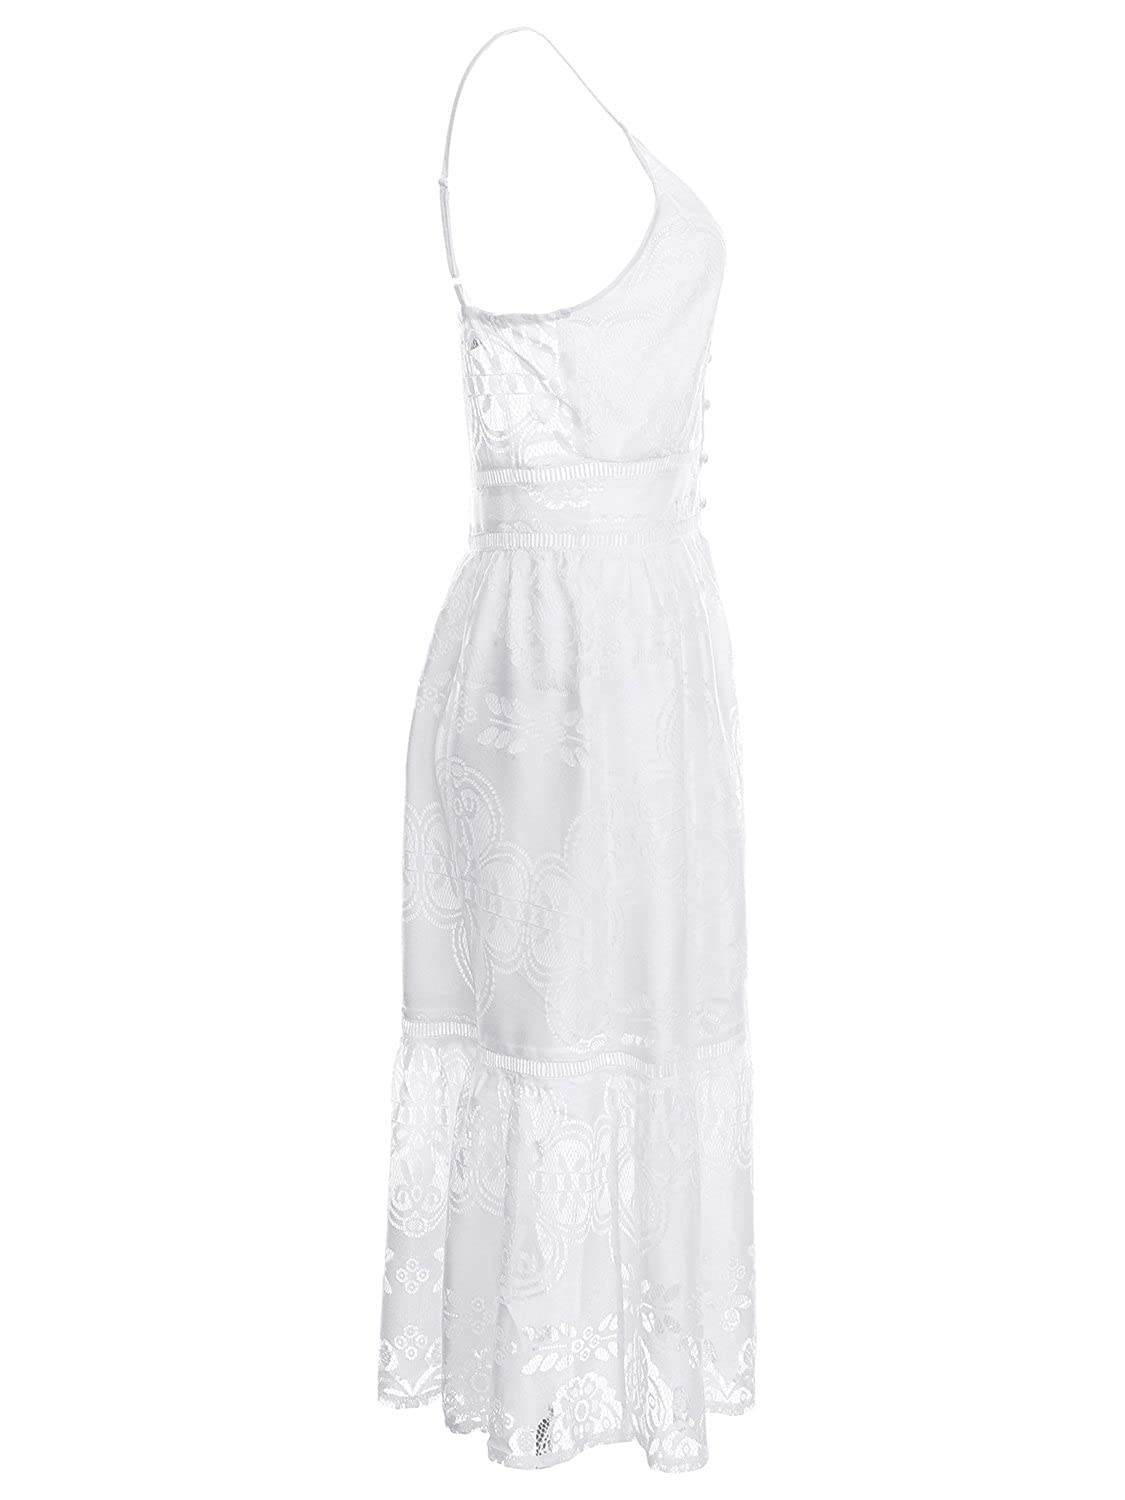 480e760e2376 Simplee Apparel Women s Summer Party Sexy Deep V Neck Backless Lace Dress  White at Amazon Women s Clothing store